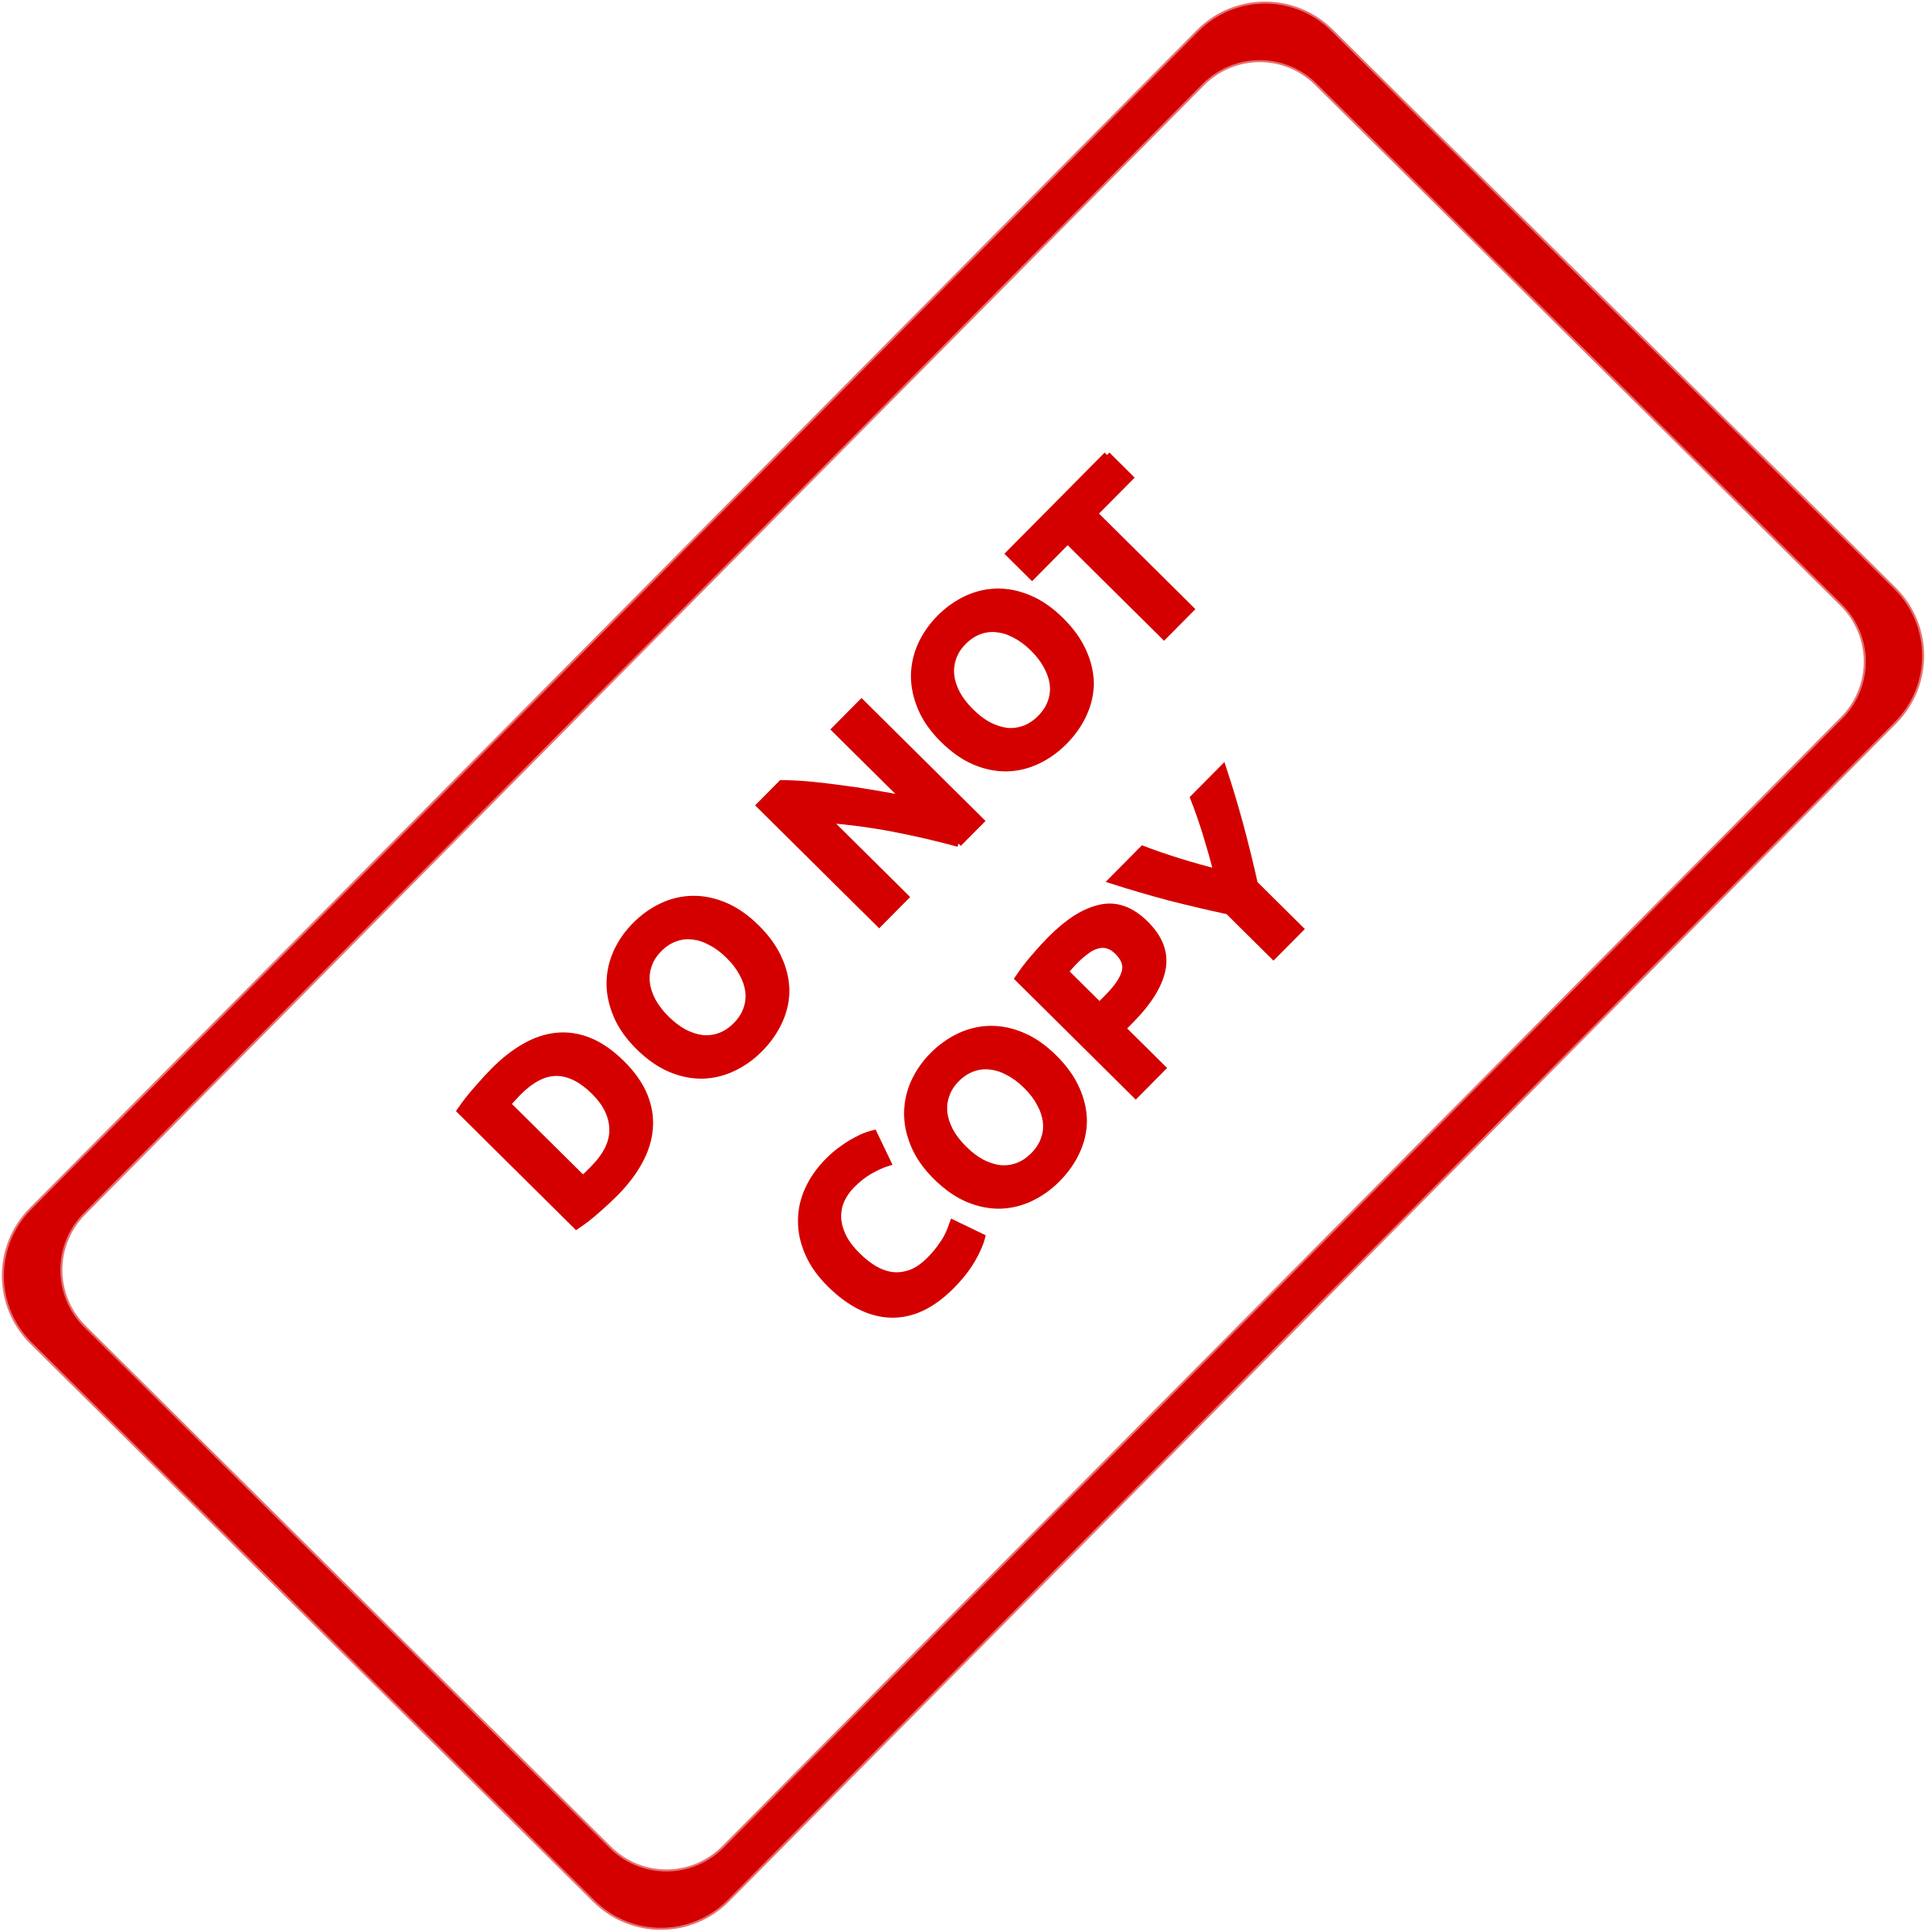 Do Not Copy Business Stamp 1 by Merlin2525